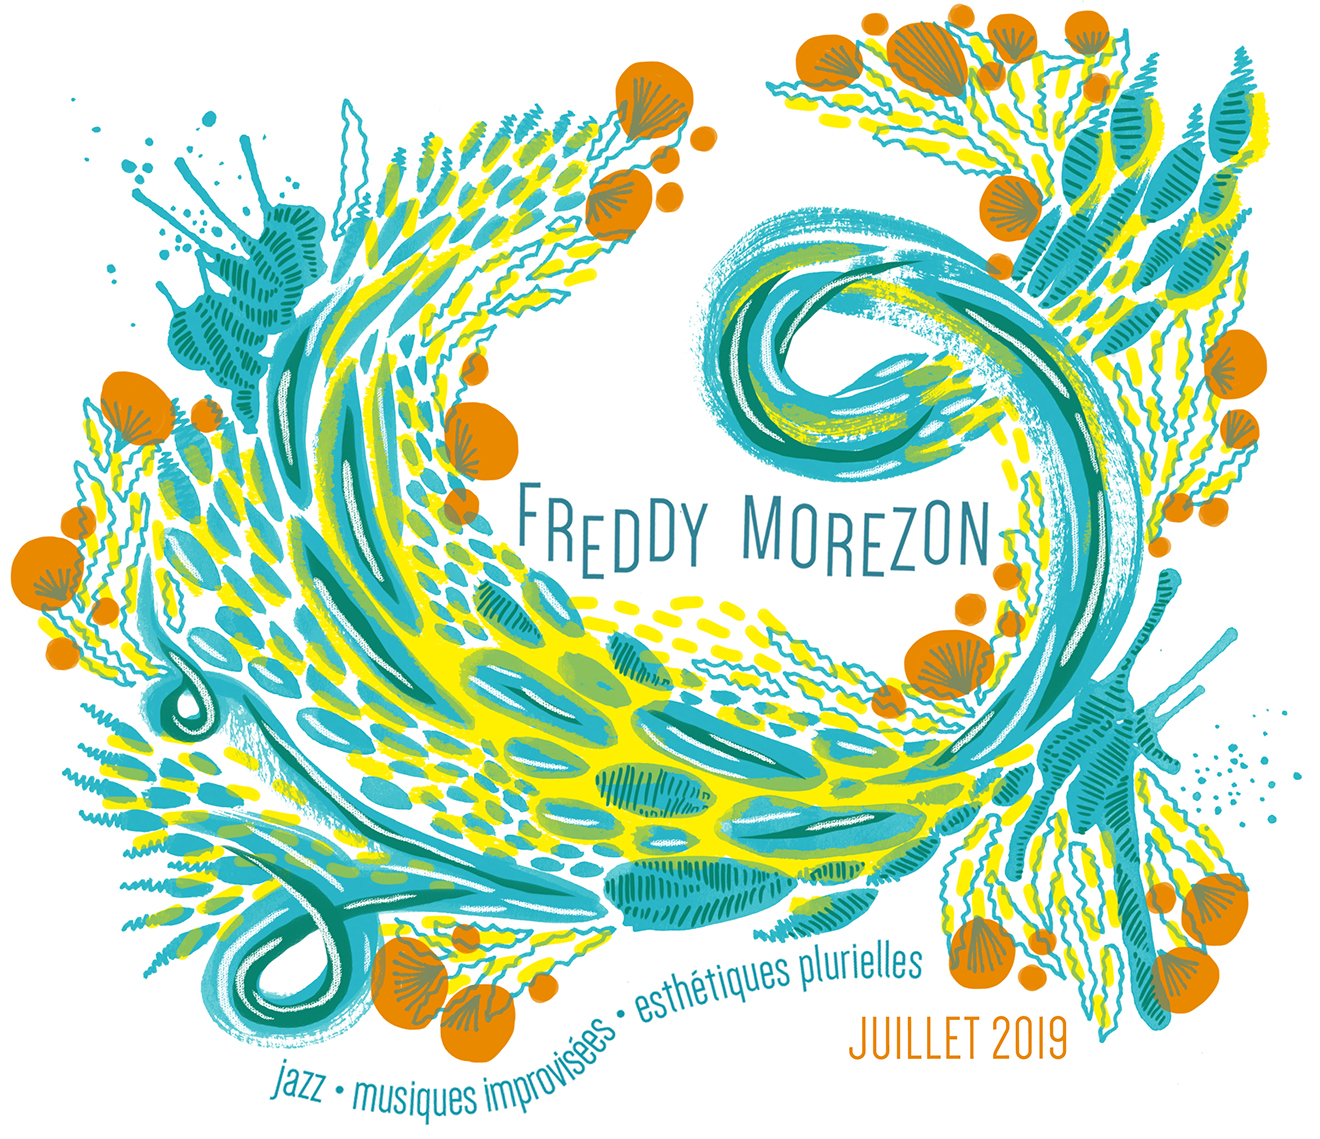 Freddy Morezon - Newsletter juillet 2019